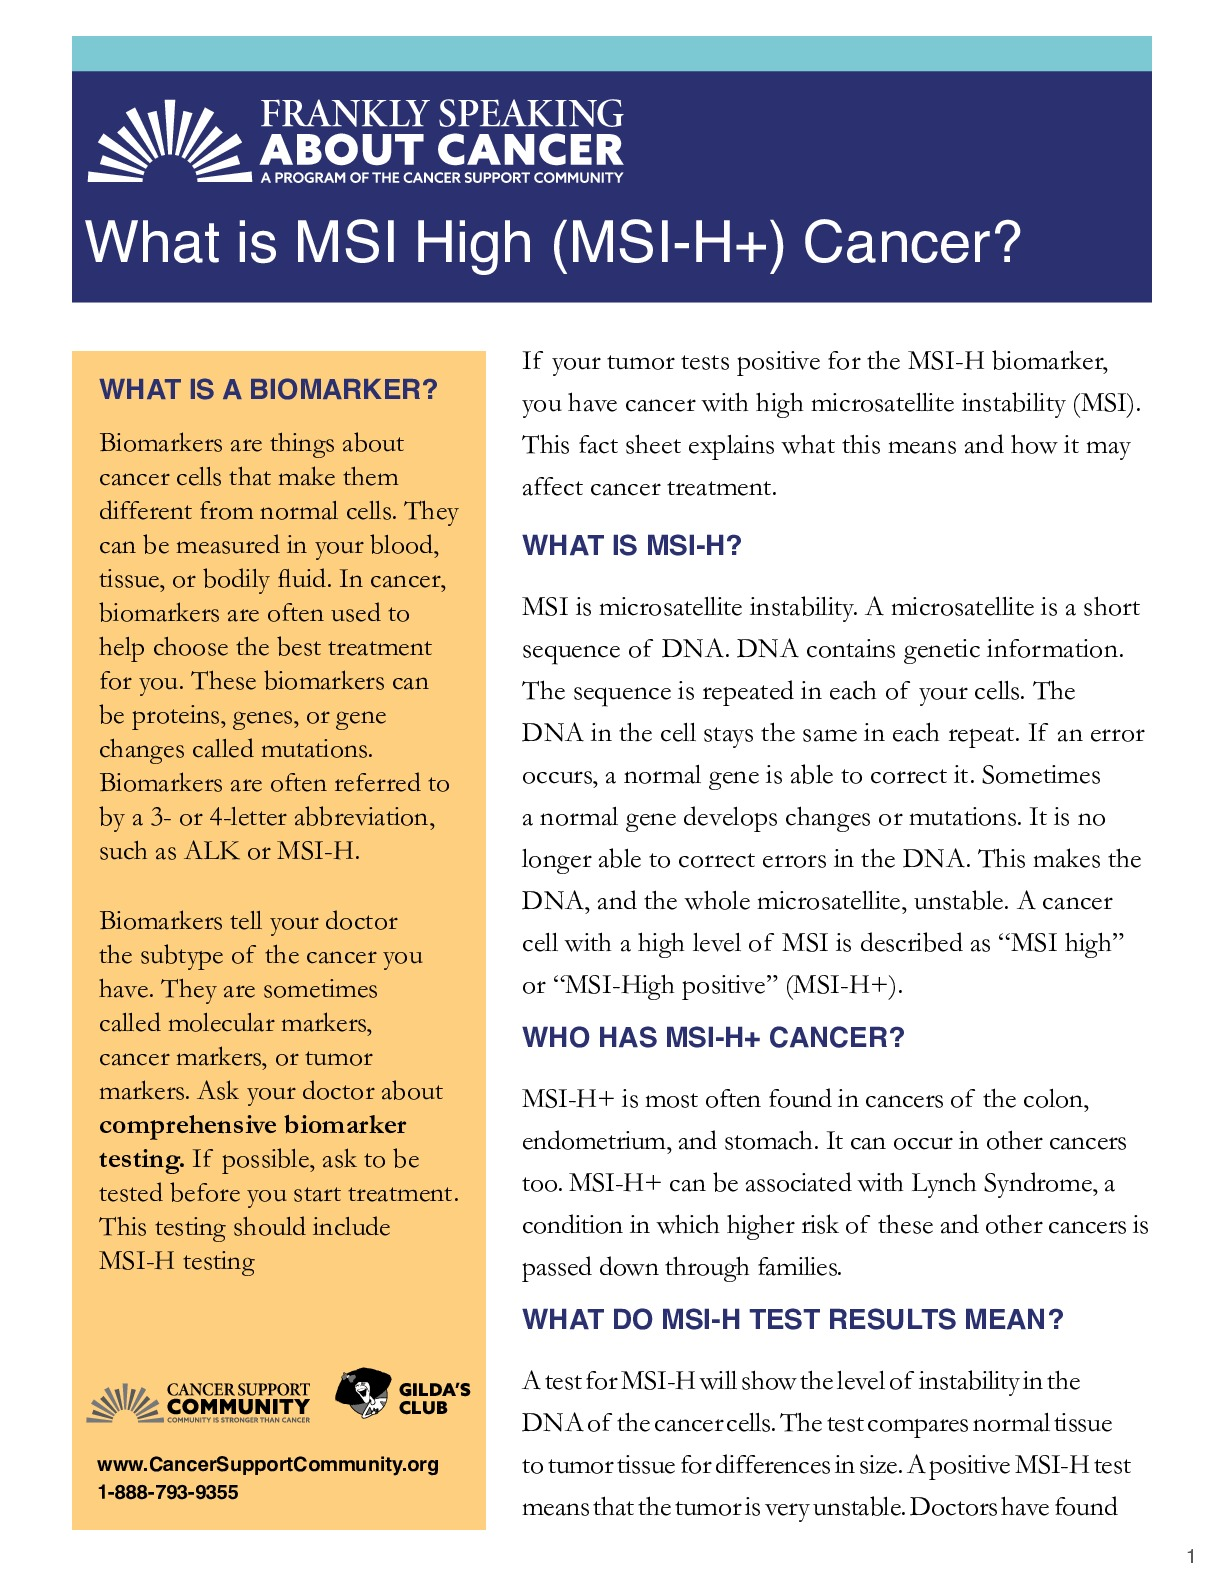 What Is MSI High (MSI-H+) Cancer?